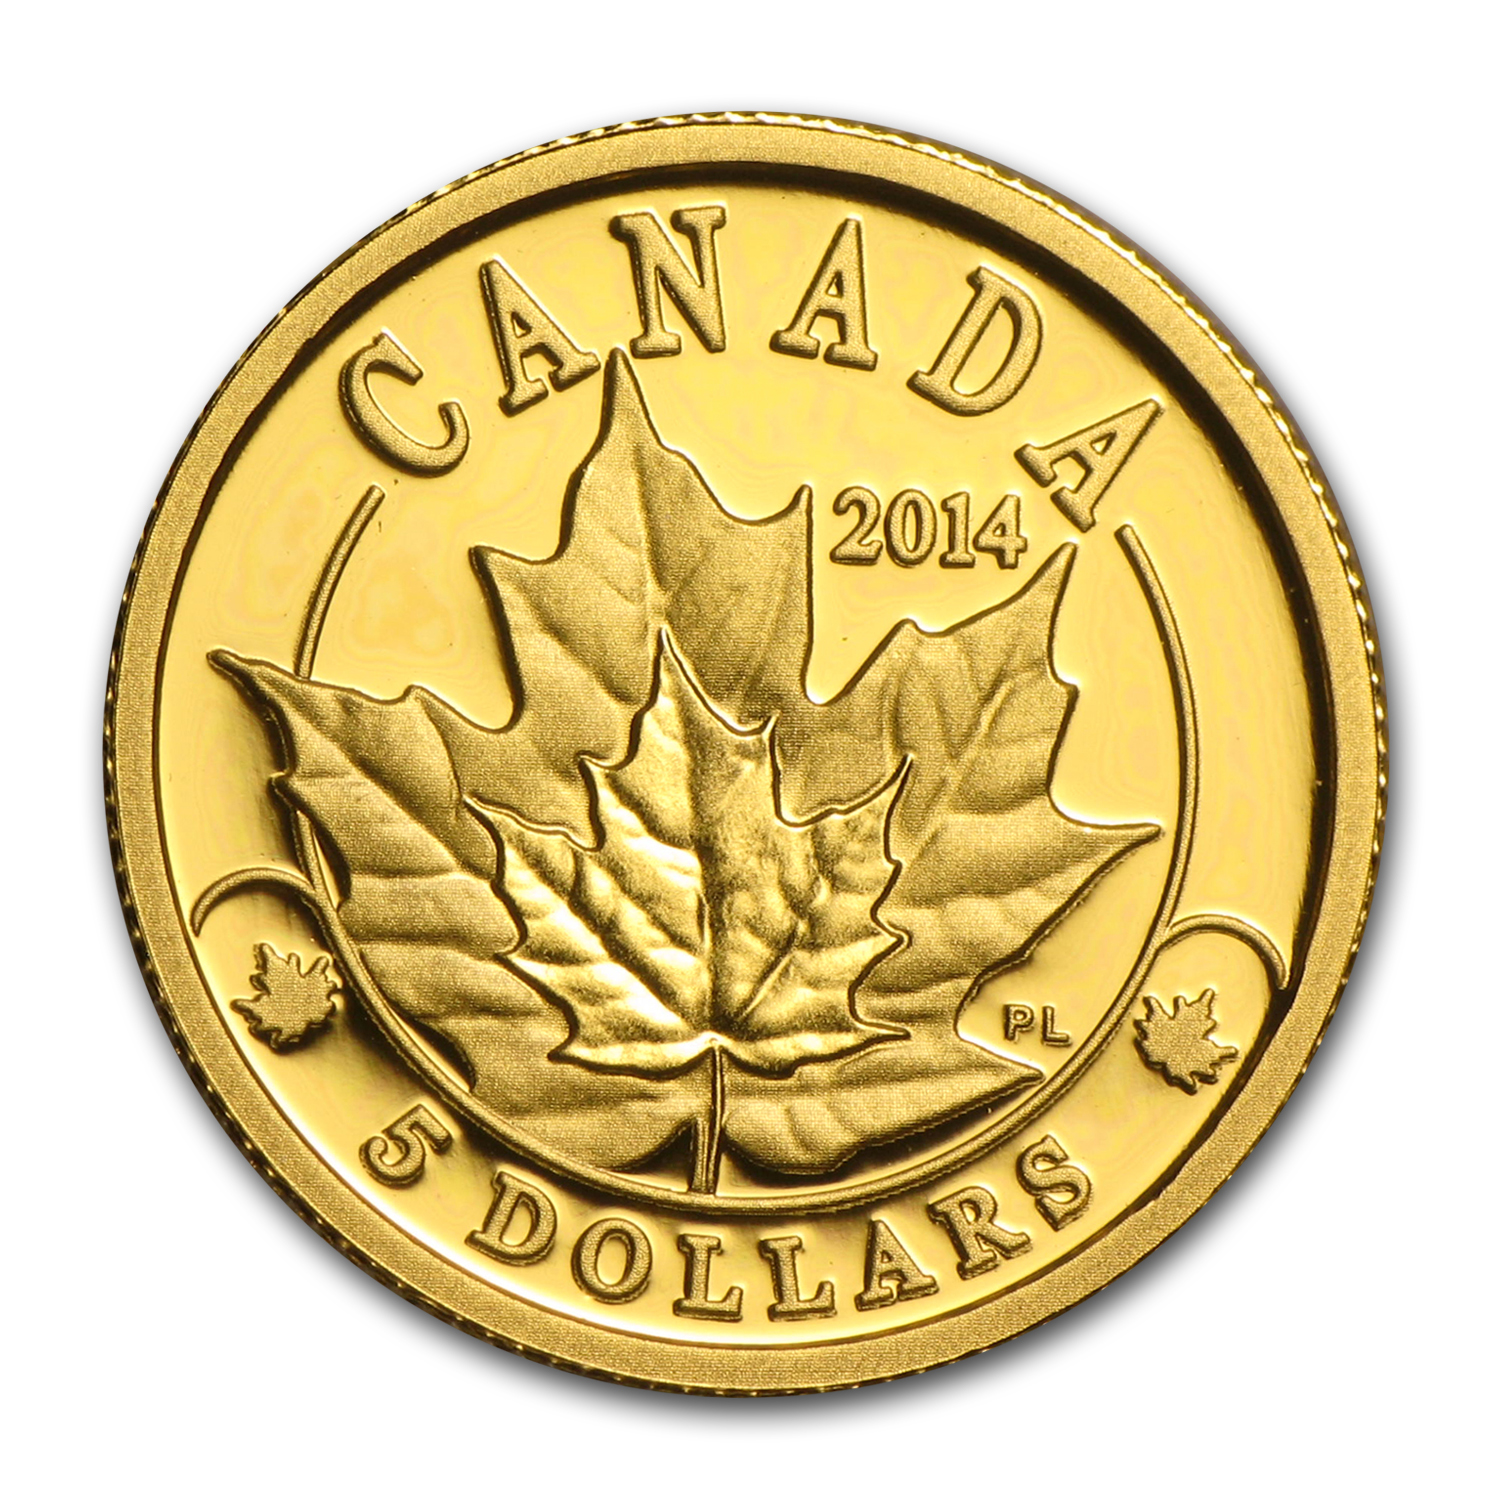 2014 Canada 1/10 oz Prf Gold $5 Overlaid Majestic Maple Leaves